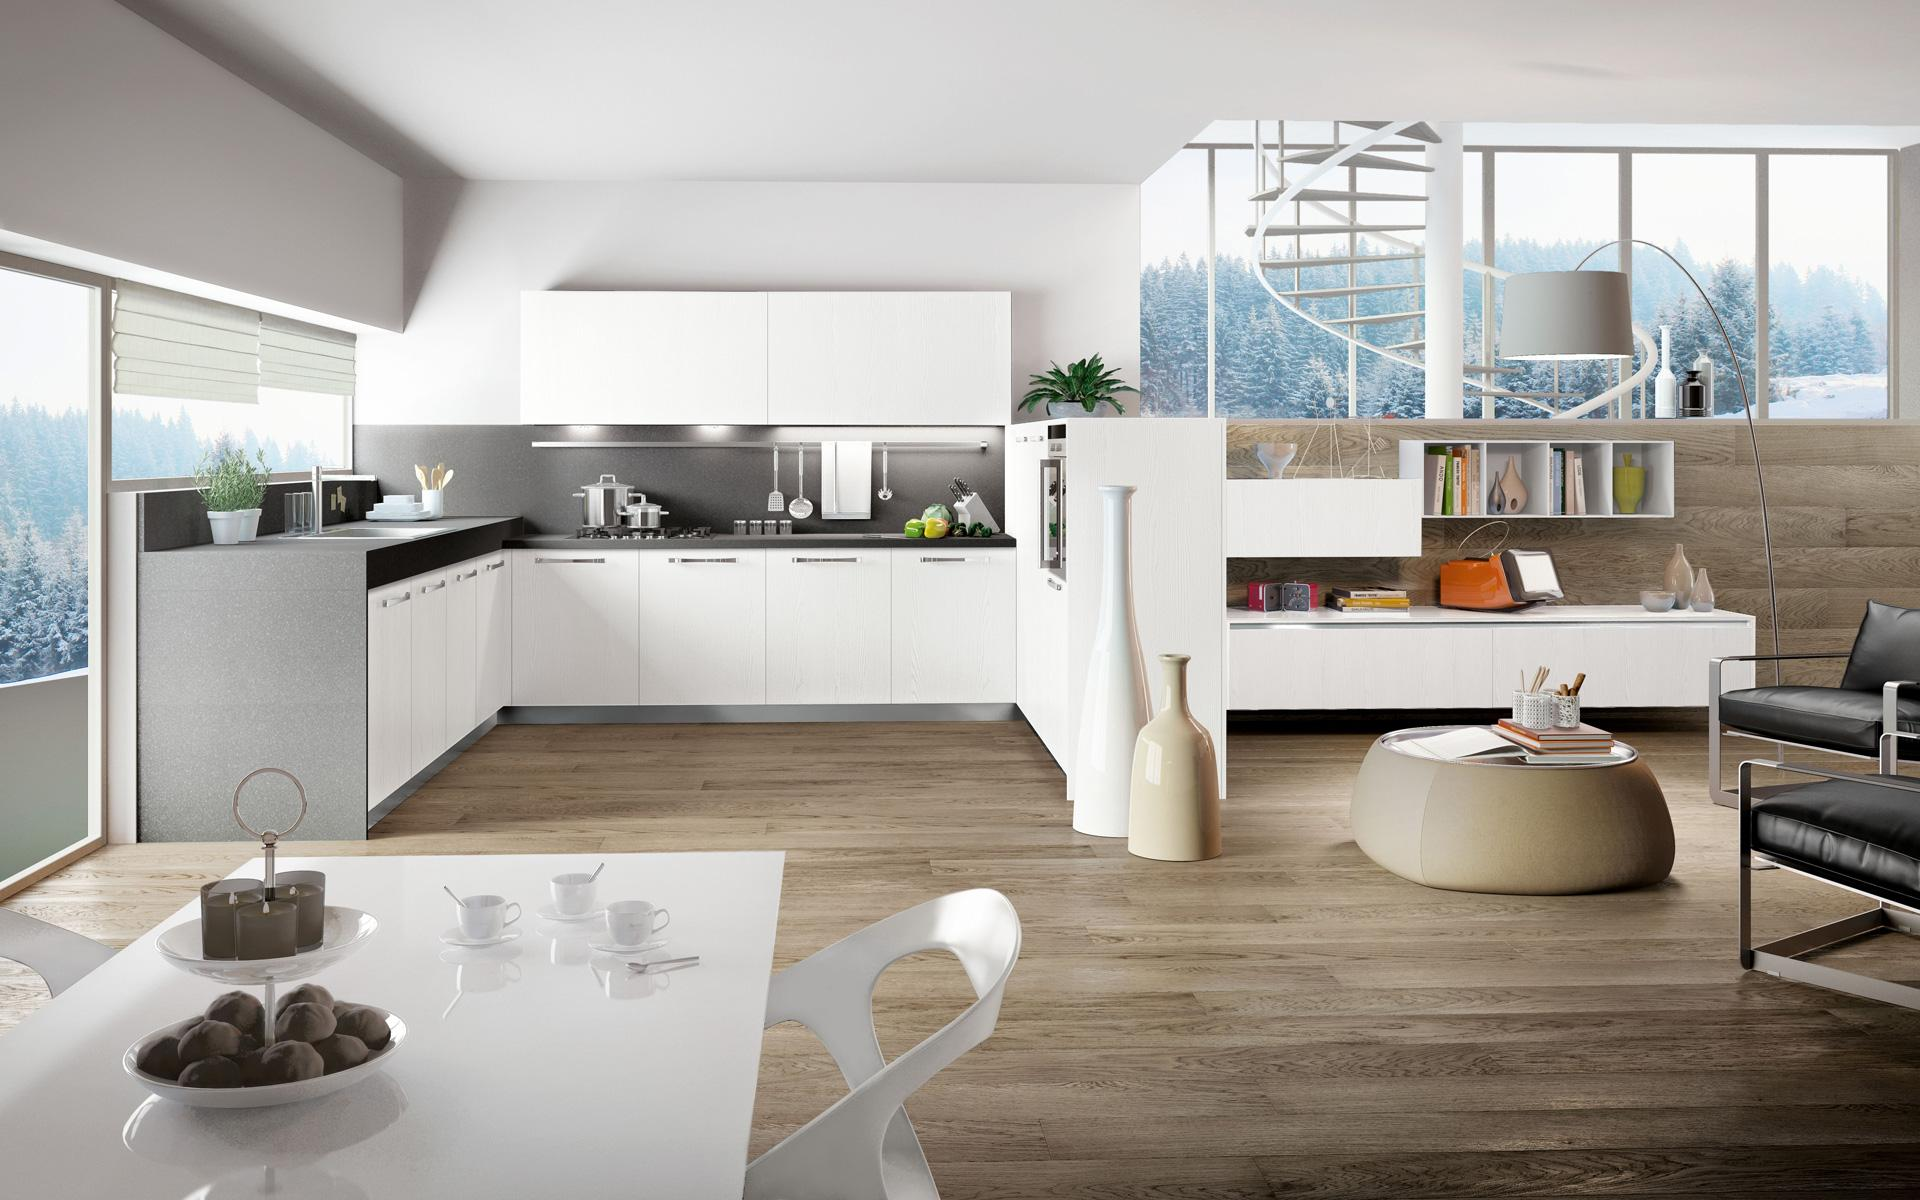 Awesome Ikea Cucine 2012 Pictures - Ideas & Design 2017 ...